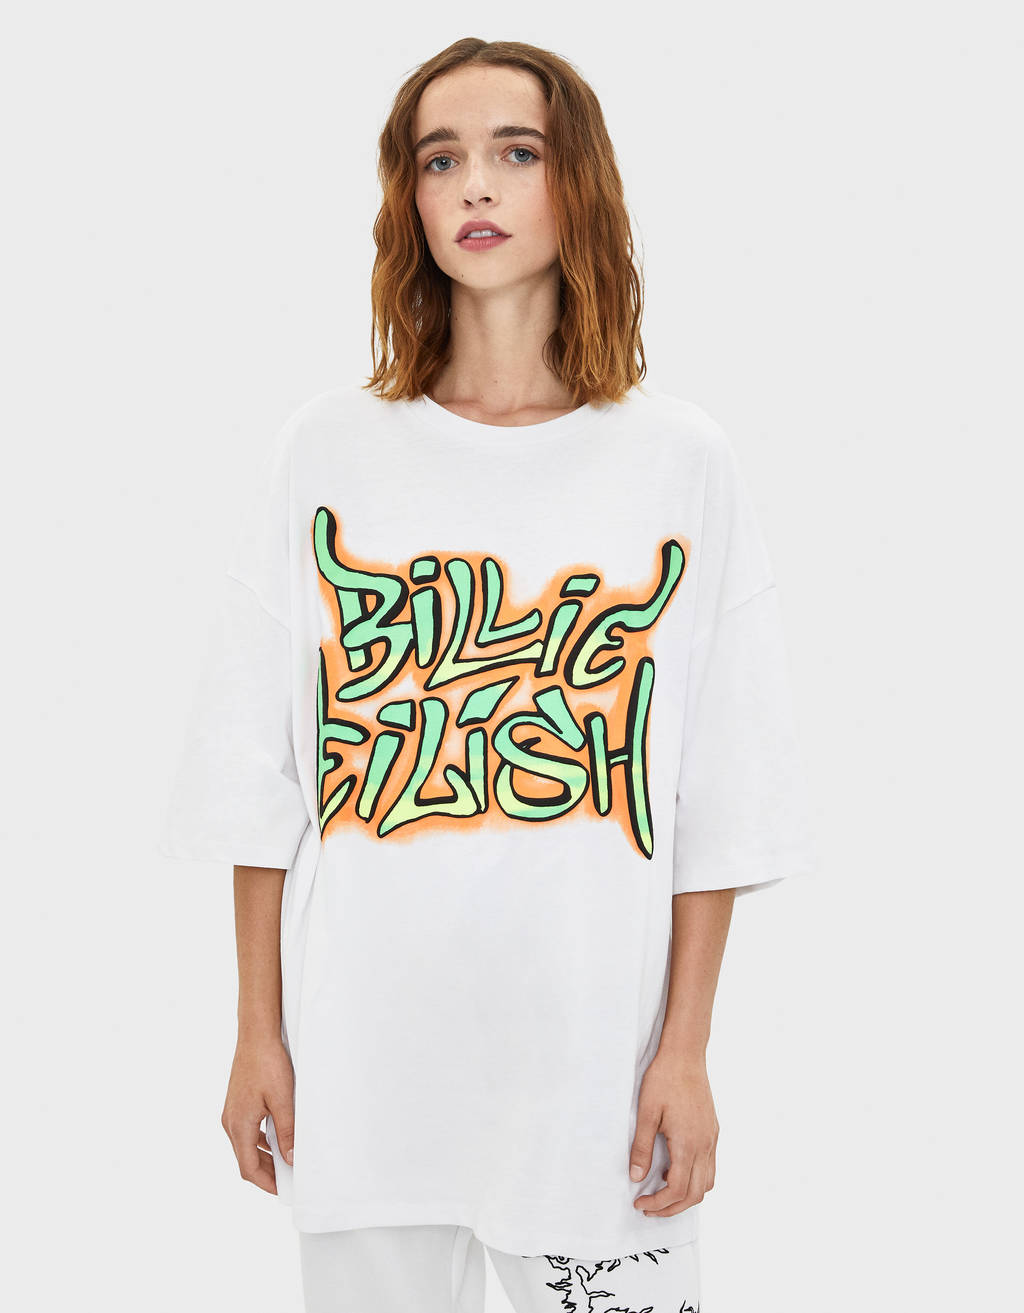 Billie Eilish x Bershka graffiti print T-shirt